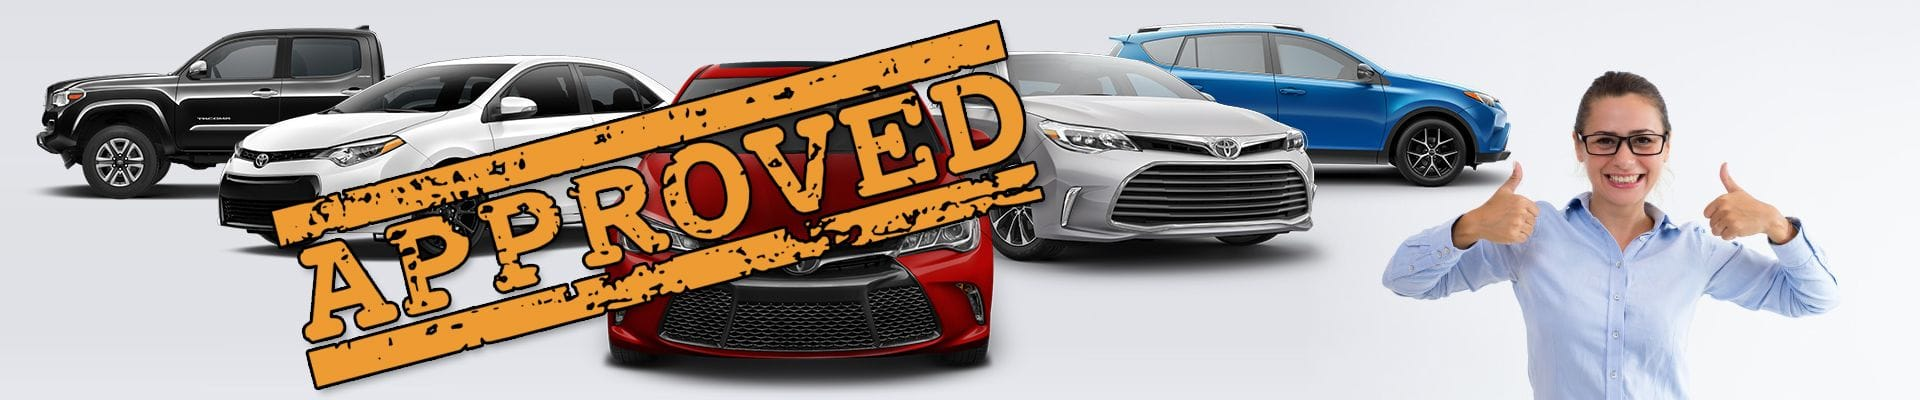 Approved Bad Credit Car Loans